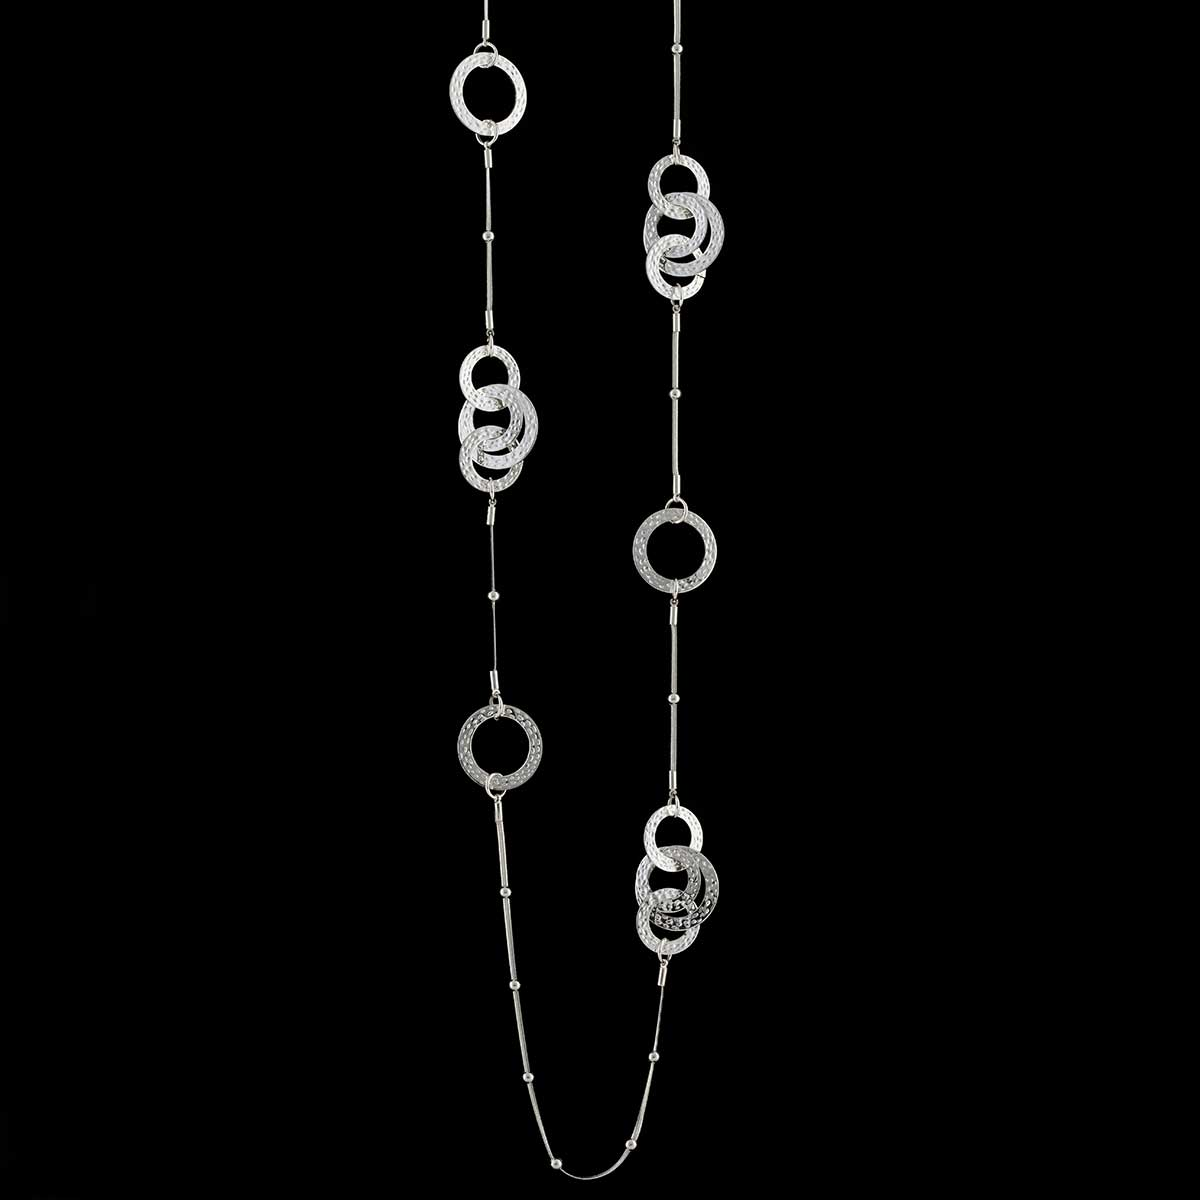 Silver Interlocking Circles and Mini Bead Necklace on Chain